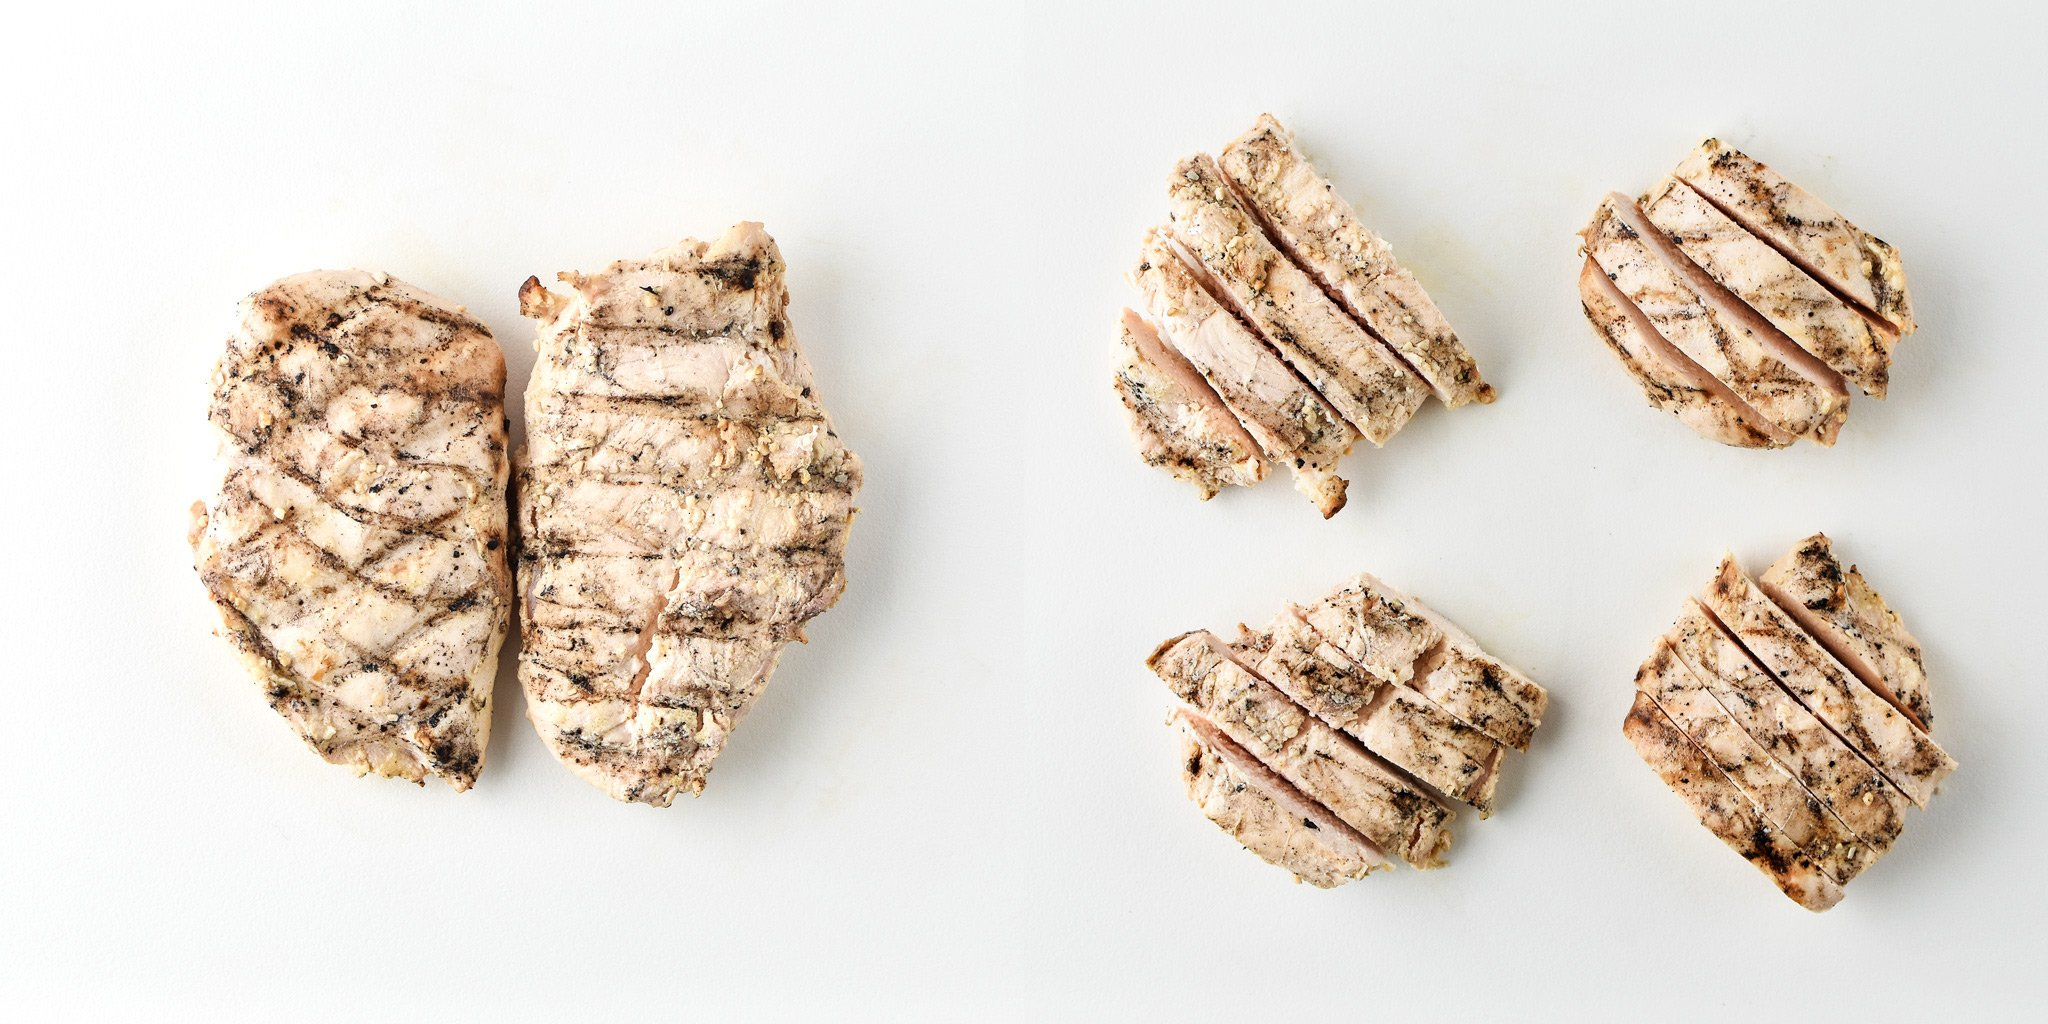 Cooked boneless skinless chicken breast before and after portioning.